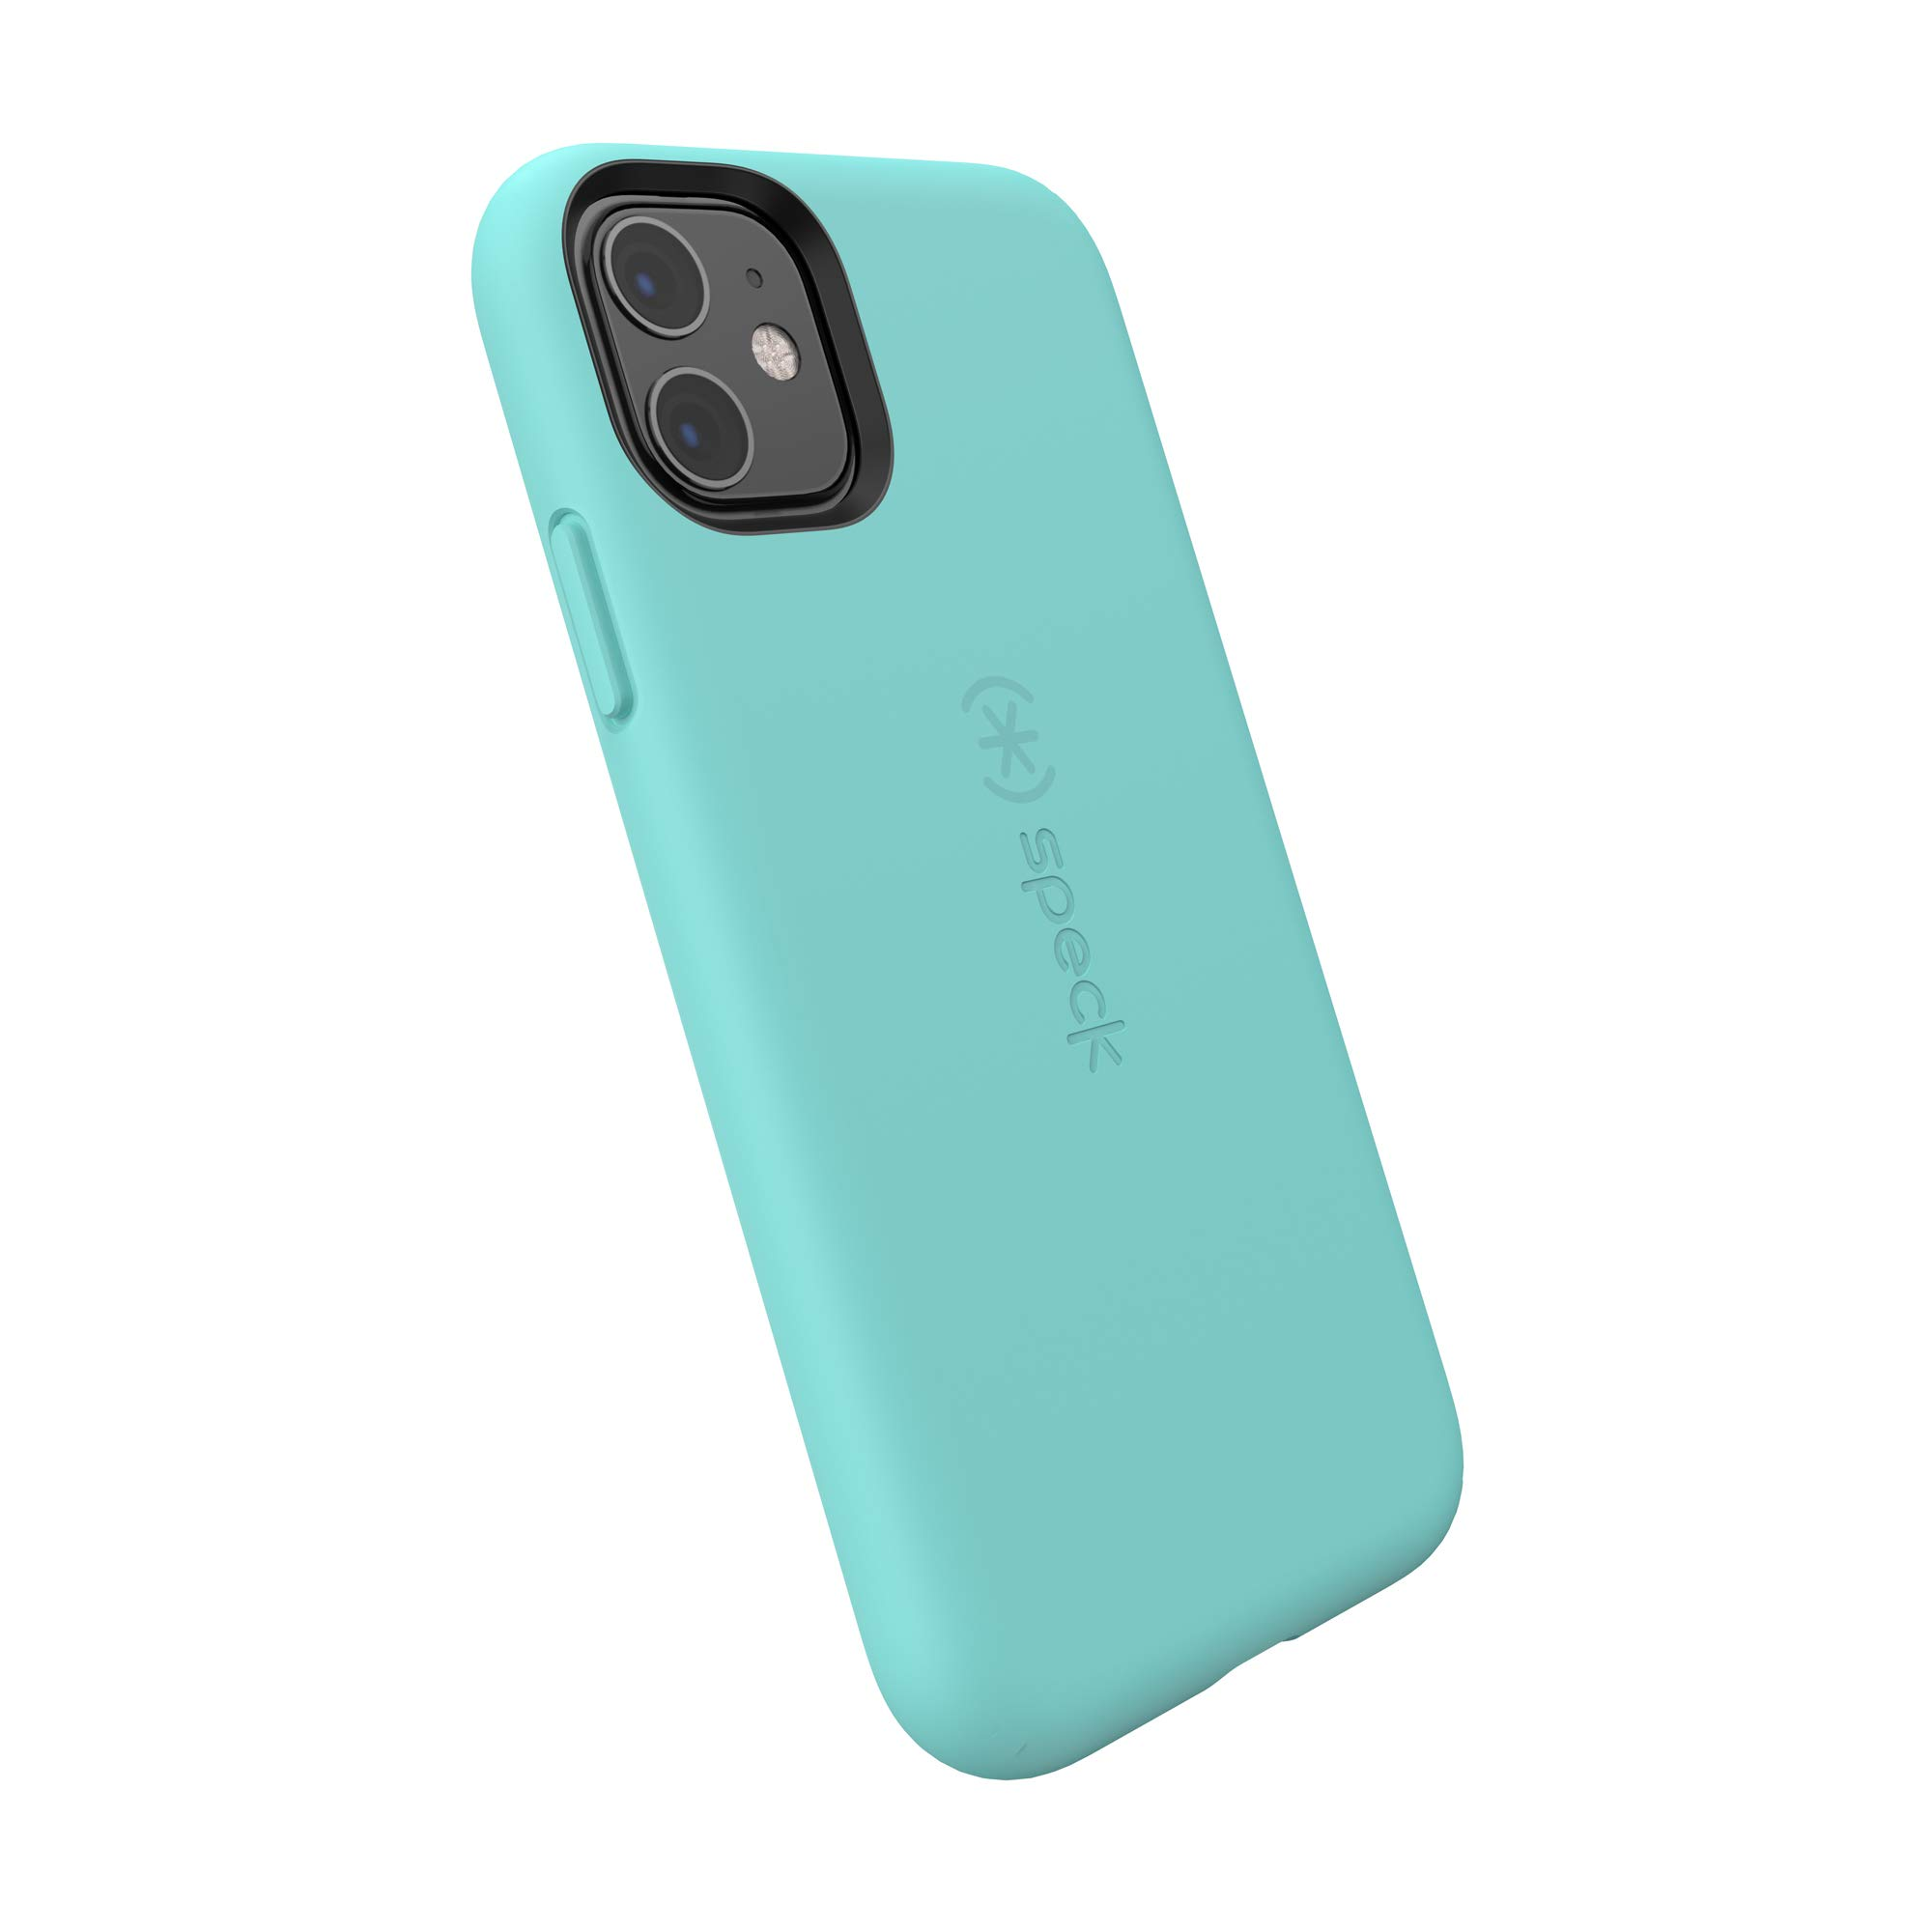 Speck CandyShell Fit iPhone 11 Case, Zeal Teal/Zeal Teal